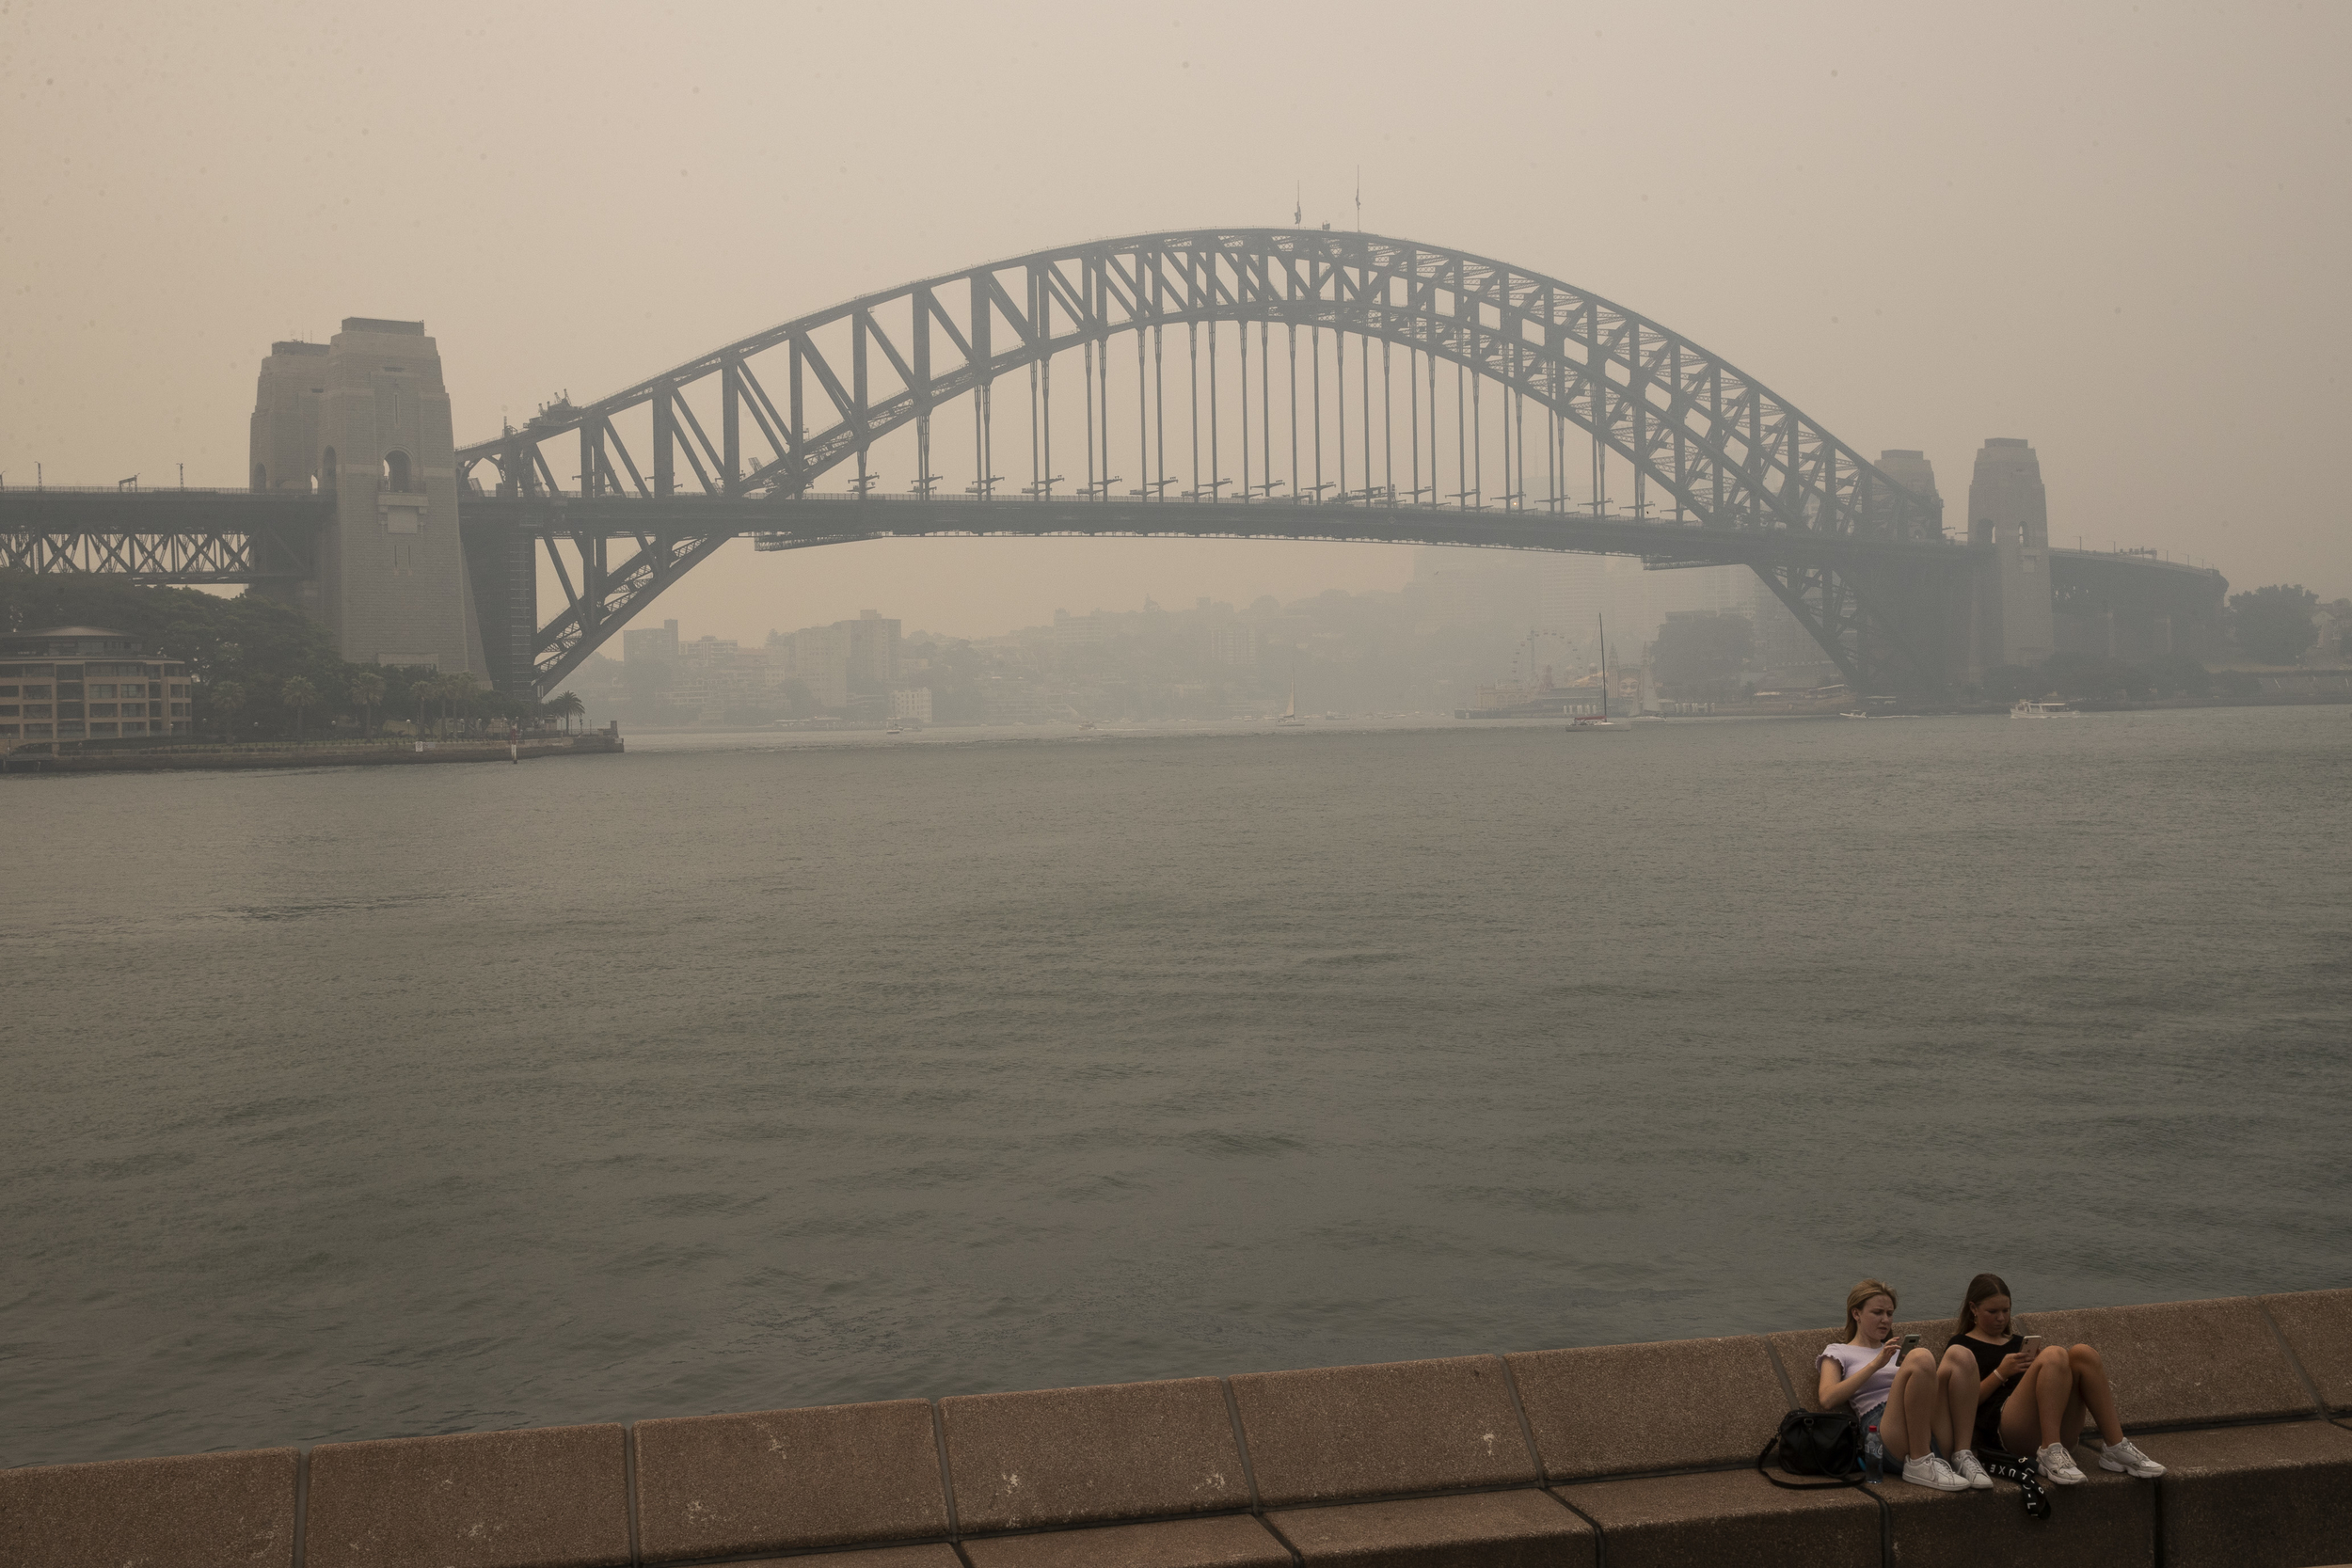 Two girls sit on a bench overlooking Sydney Harbour Bridge, which is shrouded in smoke haze from bushfires.